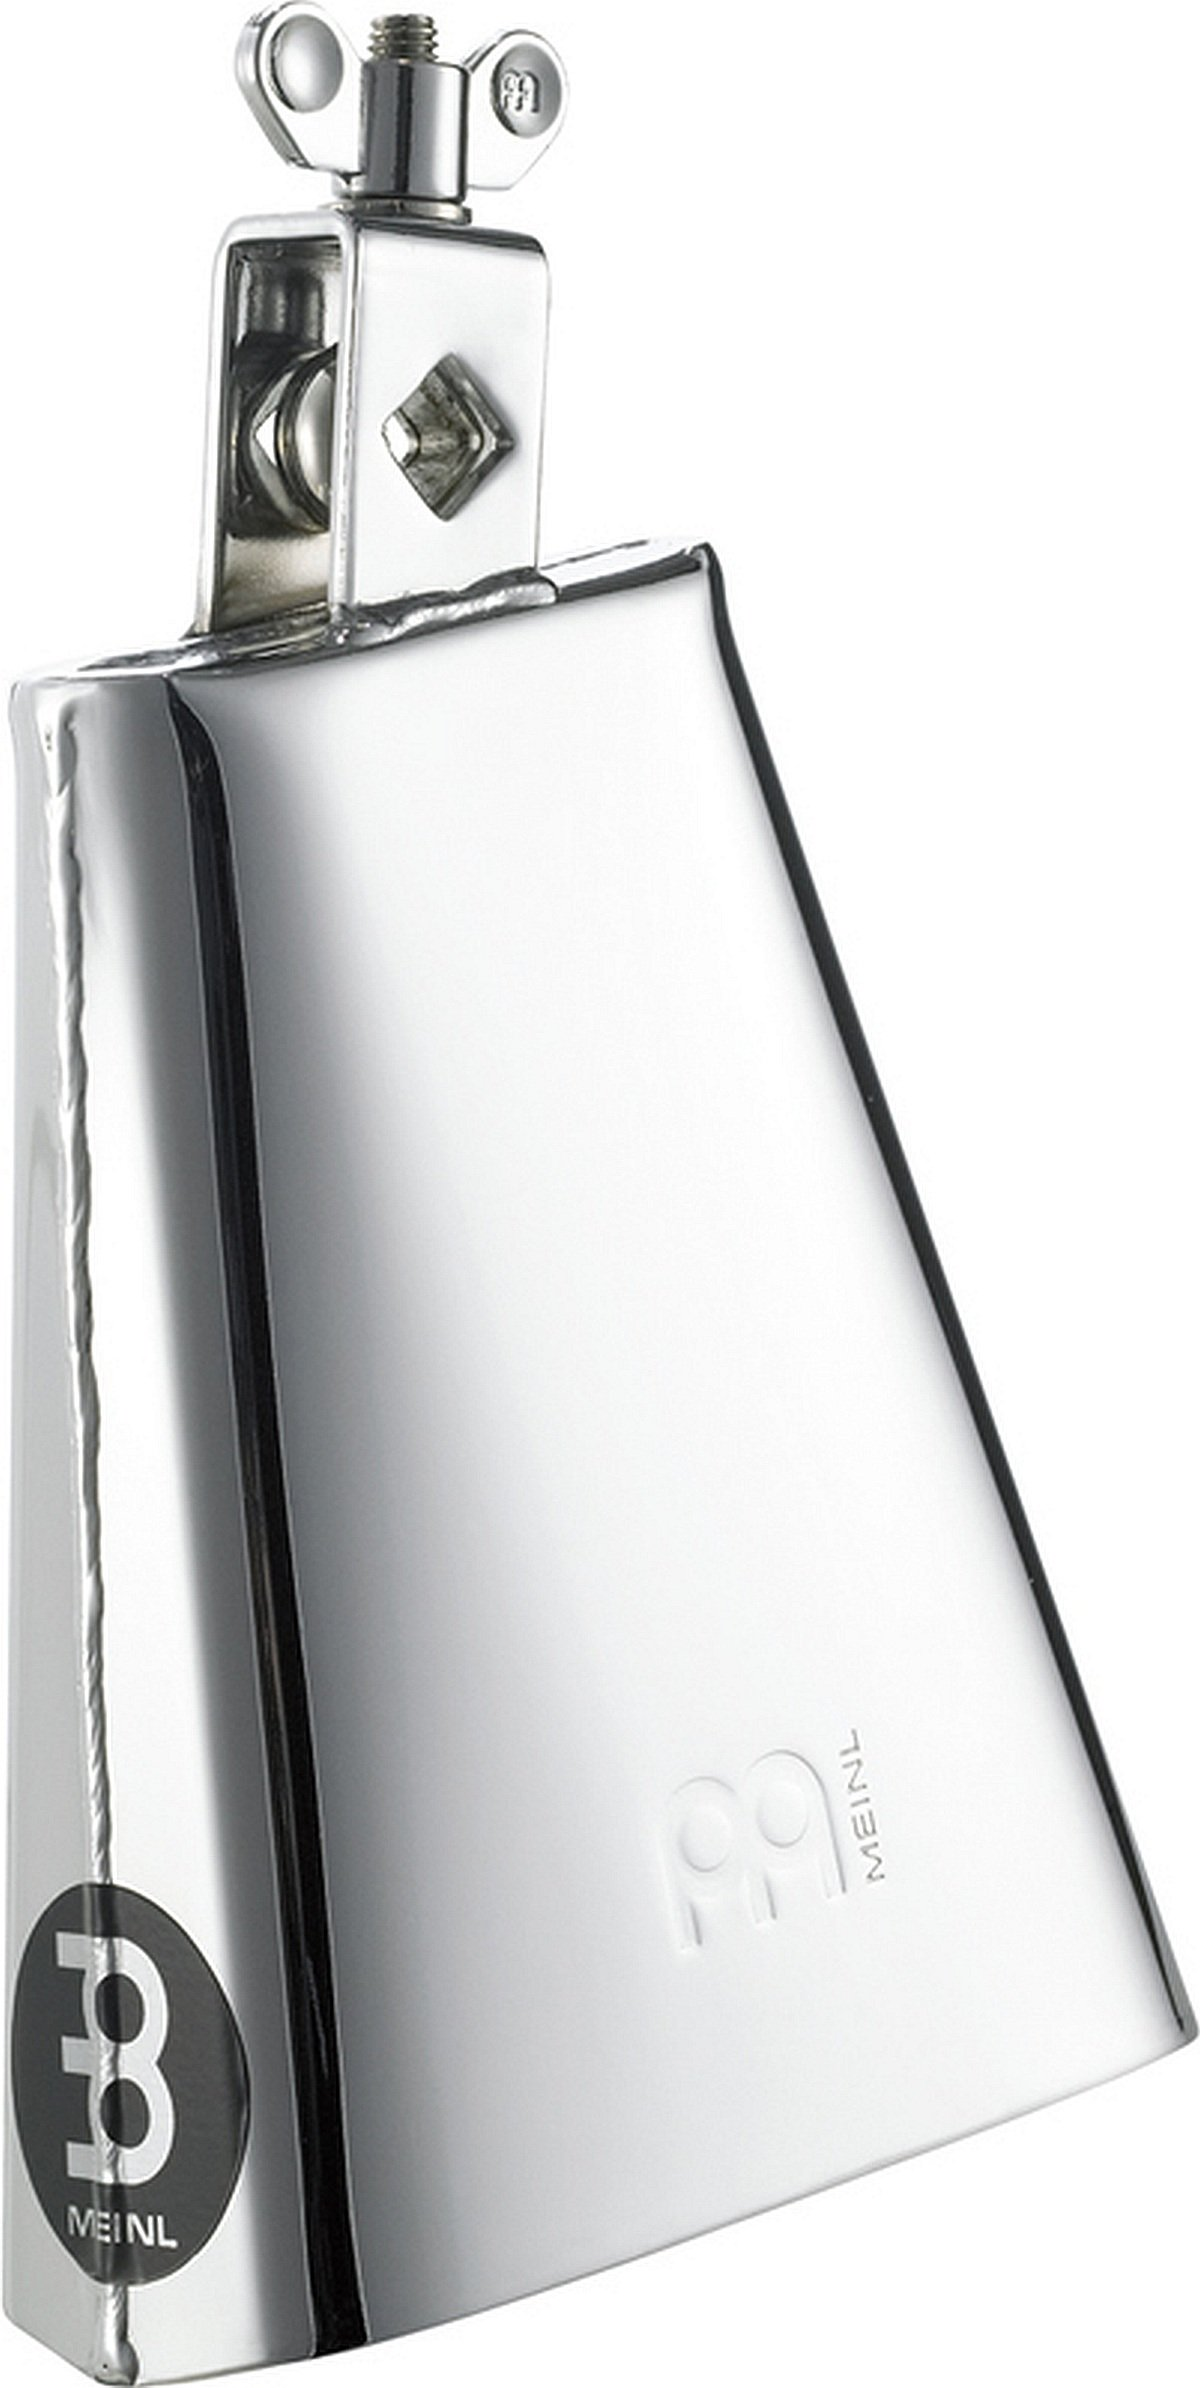 Meinl Percussion STB625-CH 6 1/2-Inch Chrome Finish Steel Cowbell by Meinl Percussion